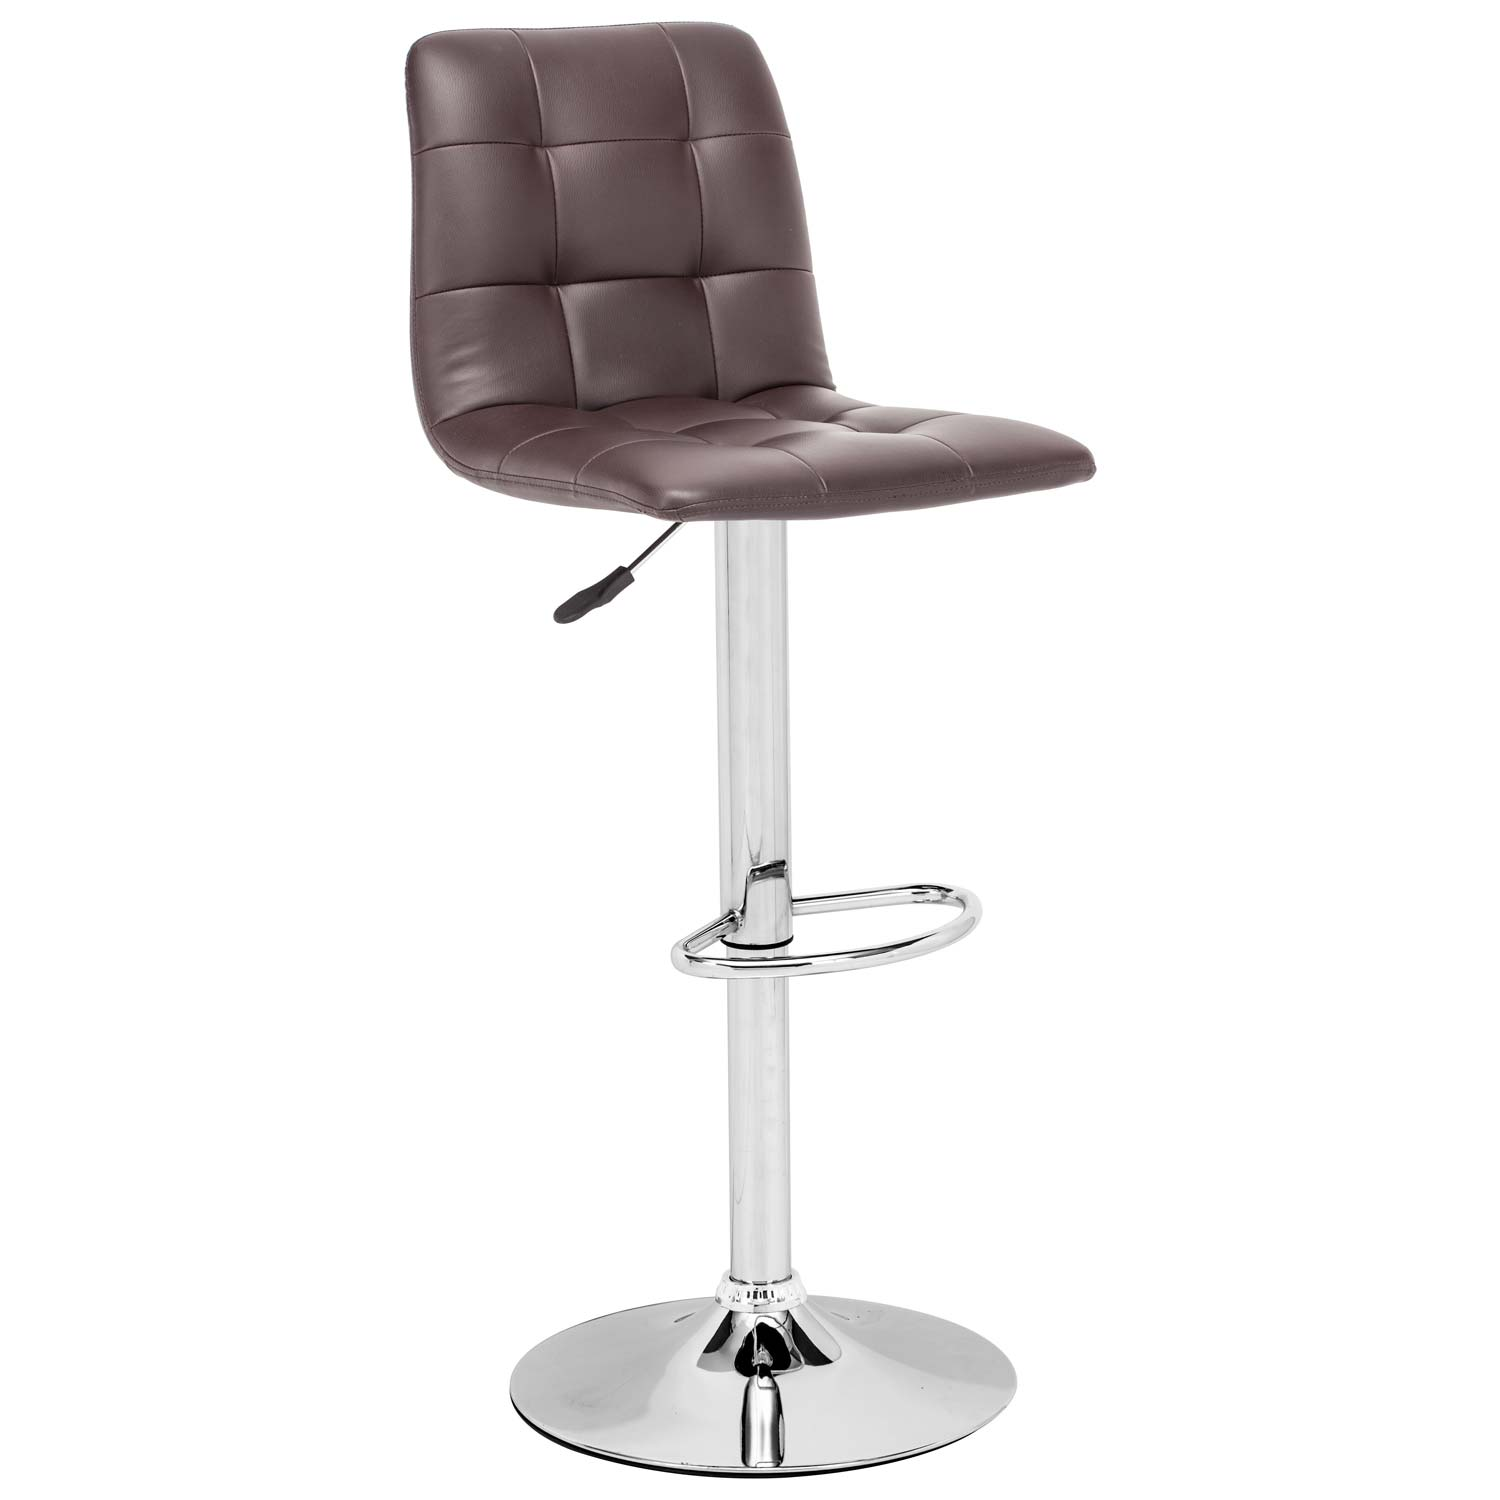 Oxygen Adjustable Swivel Barstool - Button Tufted - ZM-30135X